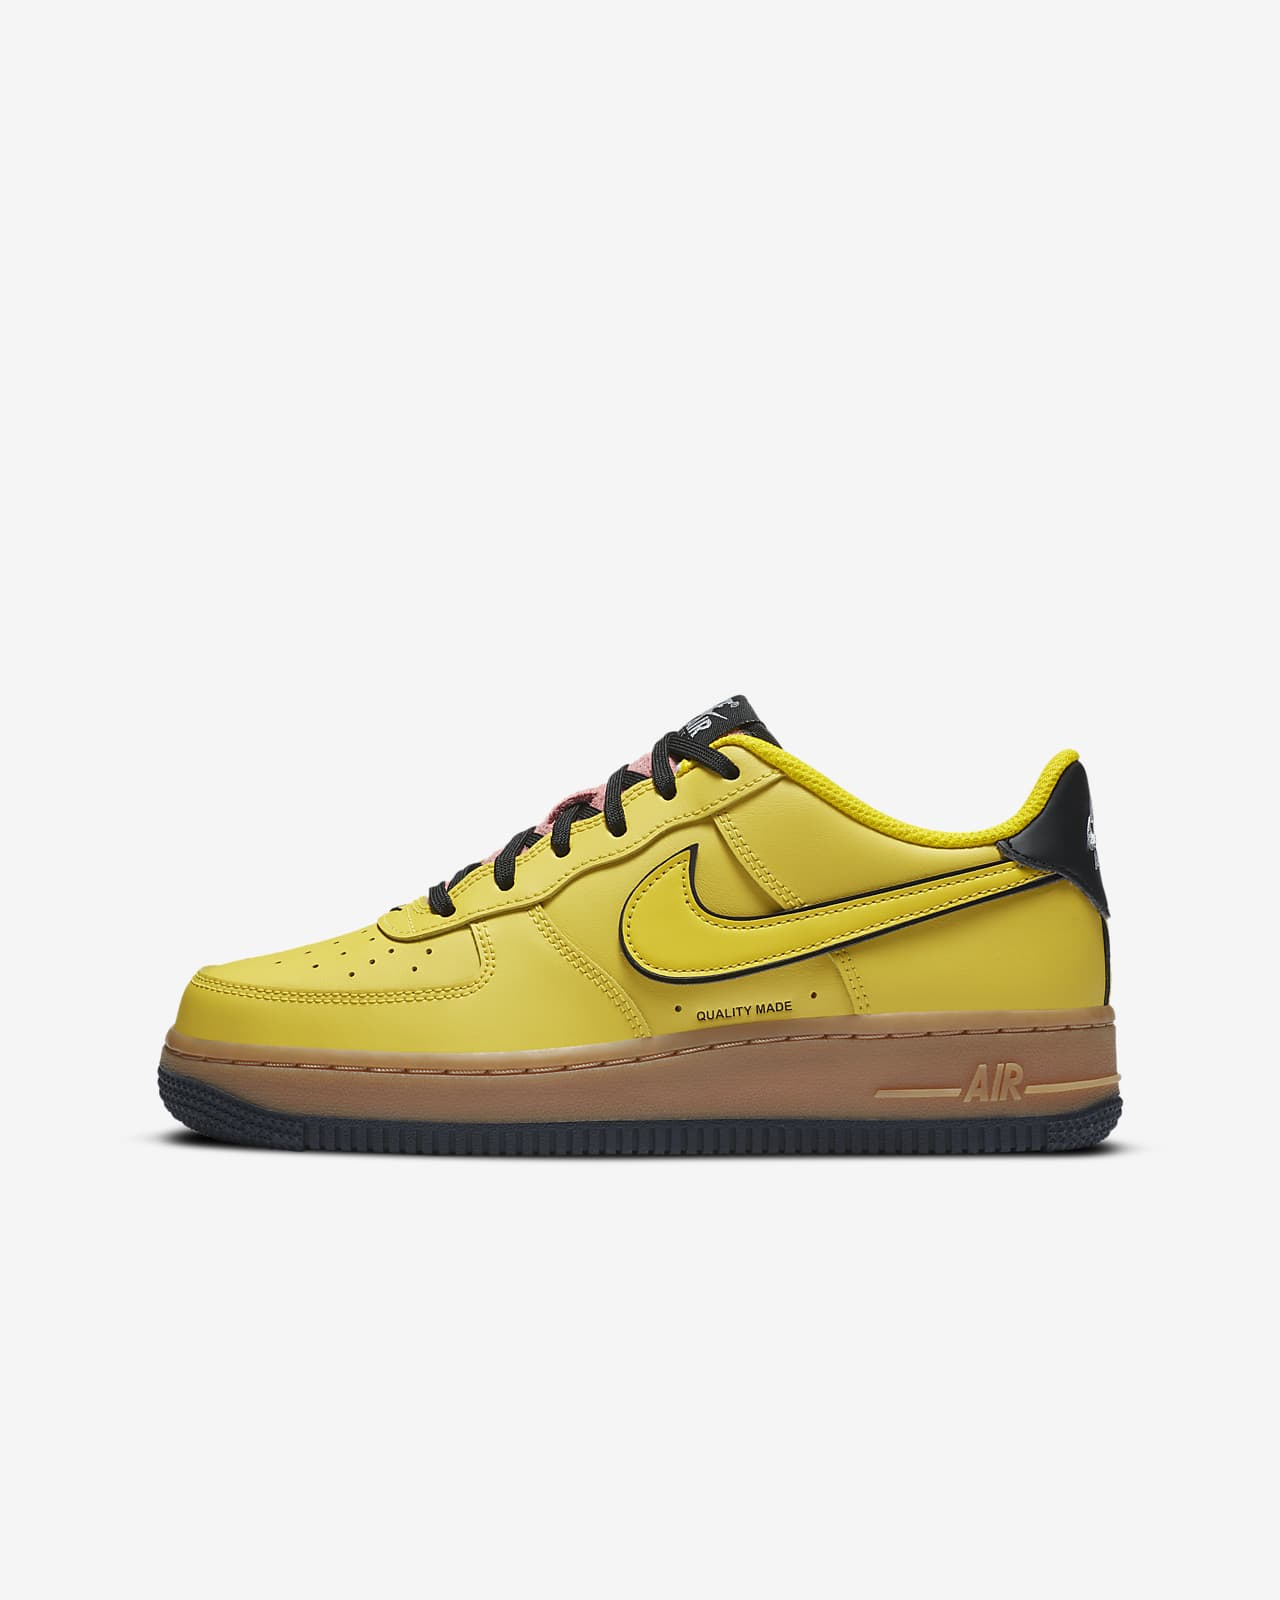 Perpetuo chatarra Precipicio  Nike Air Force 1 LV8 1 Big Kids' Shoe. Nike.com